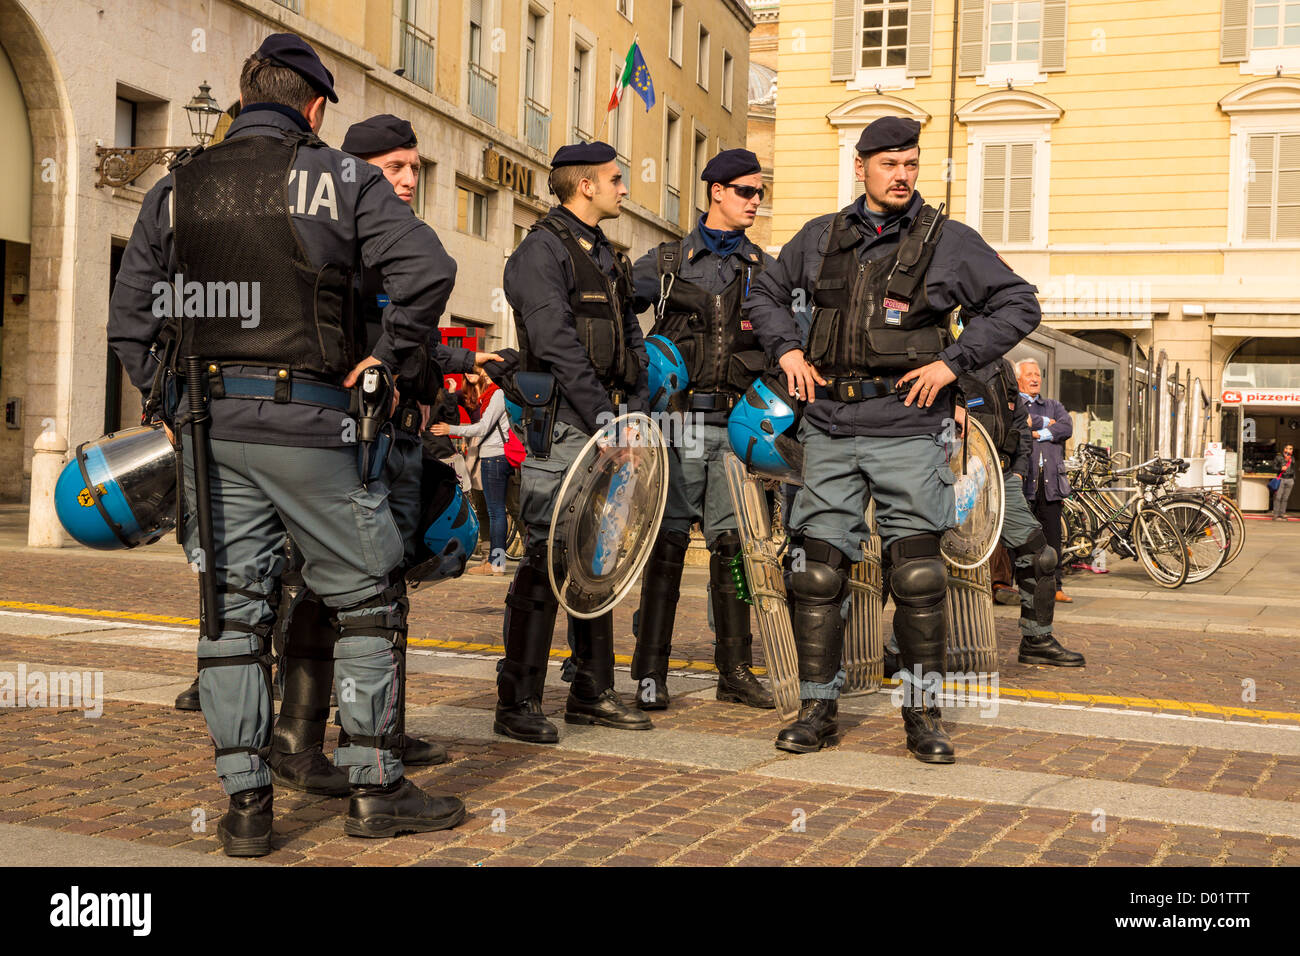 Italian police watching a political demonstration against Italian austerity masseurs, Parma, Italy - Stock Image